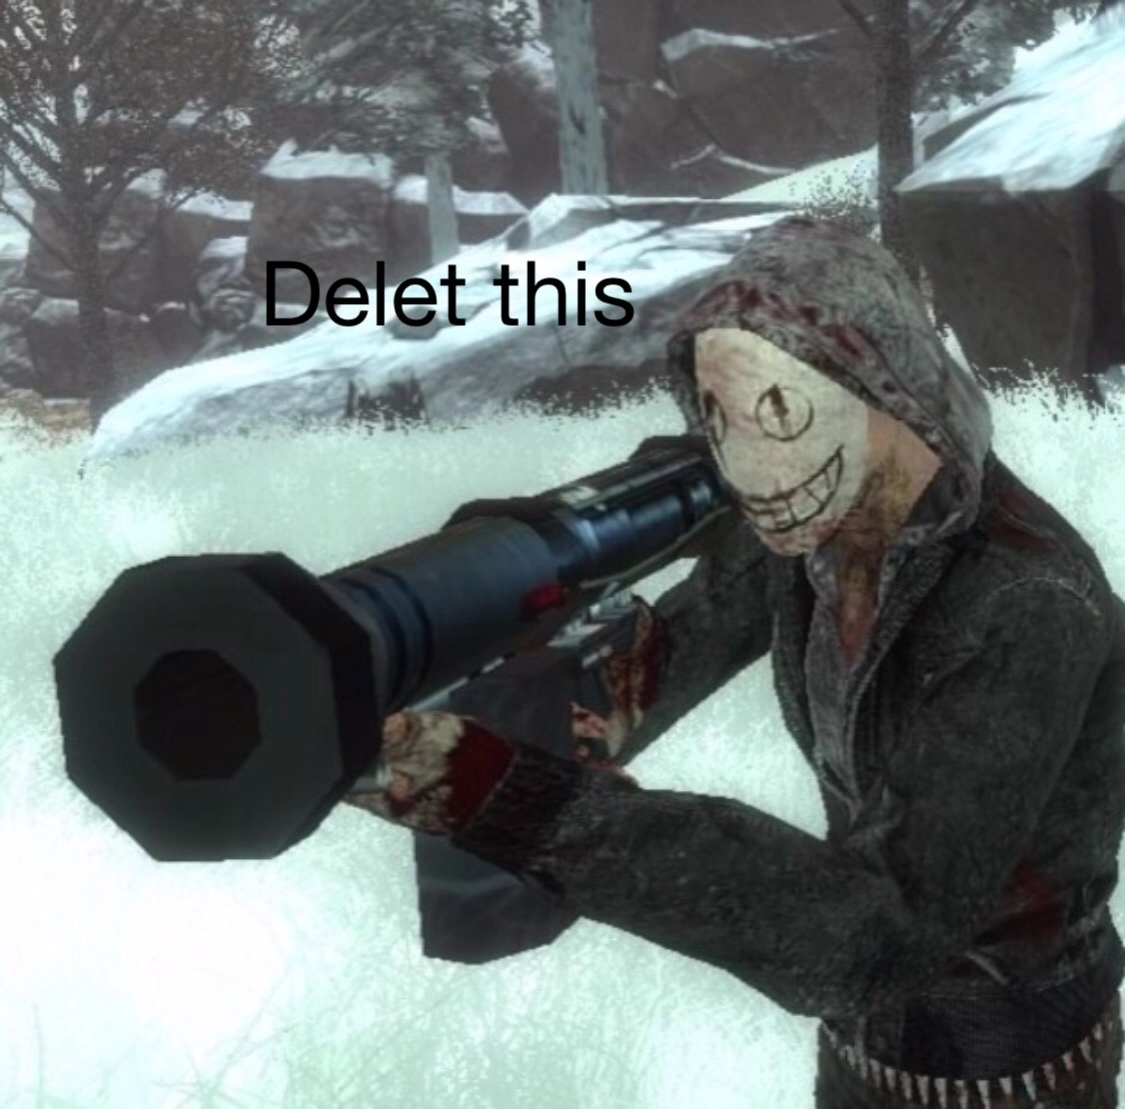 delet this.png